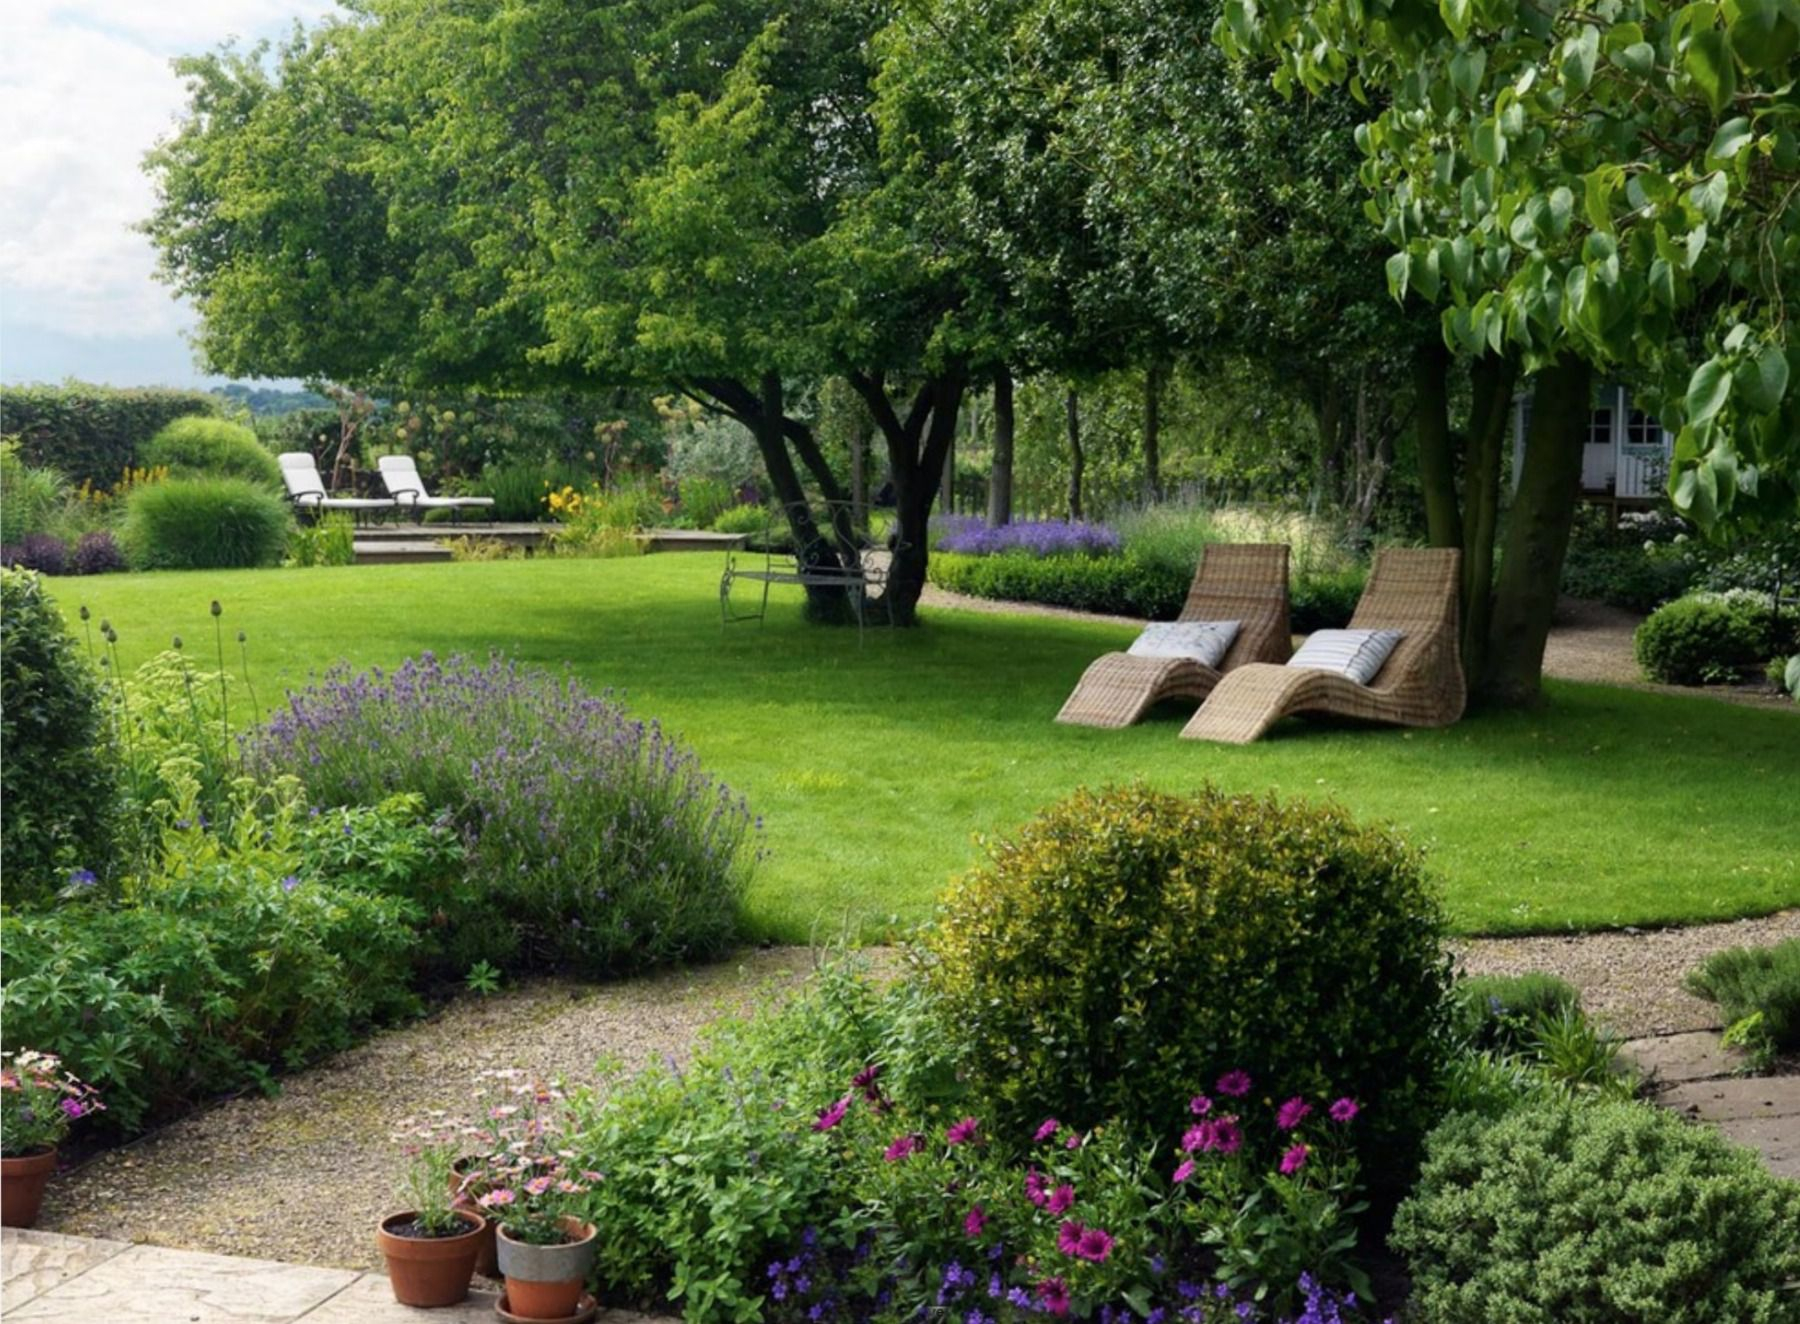 50 Backyard Landscaping Ideas To Inspire You pertaining to 11 Awesome Designs of How to Craft Backyard Landscapes